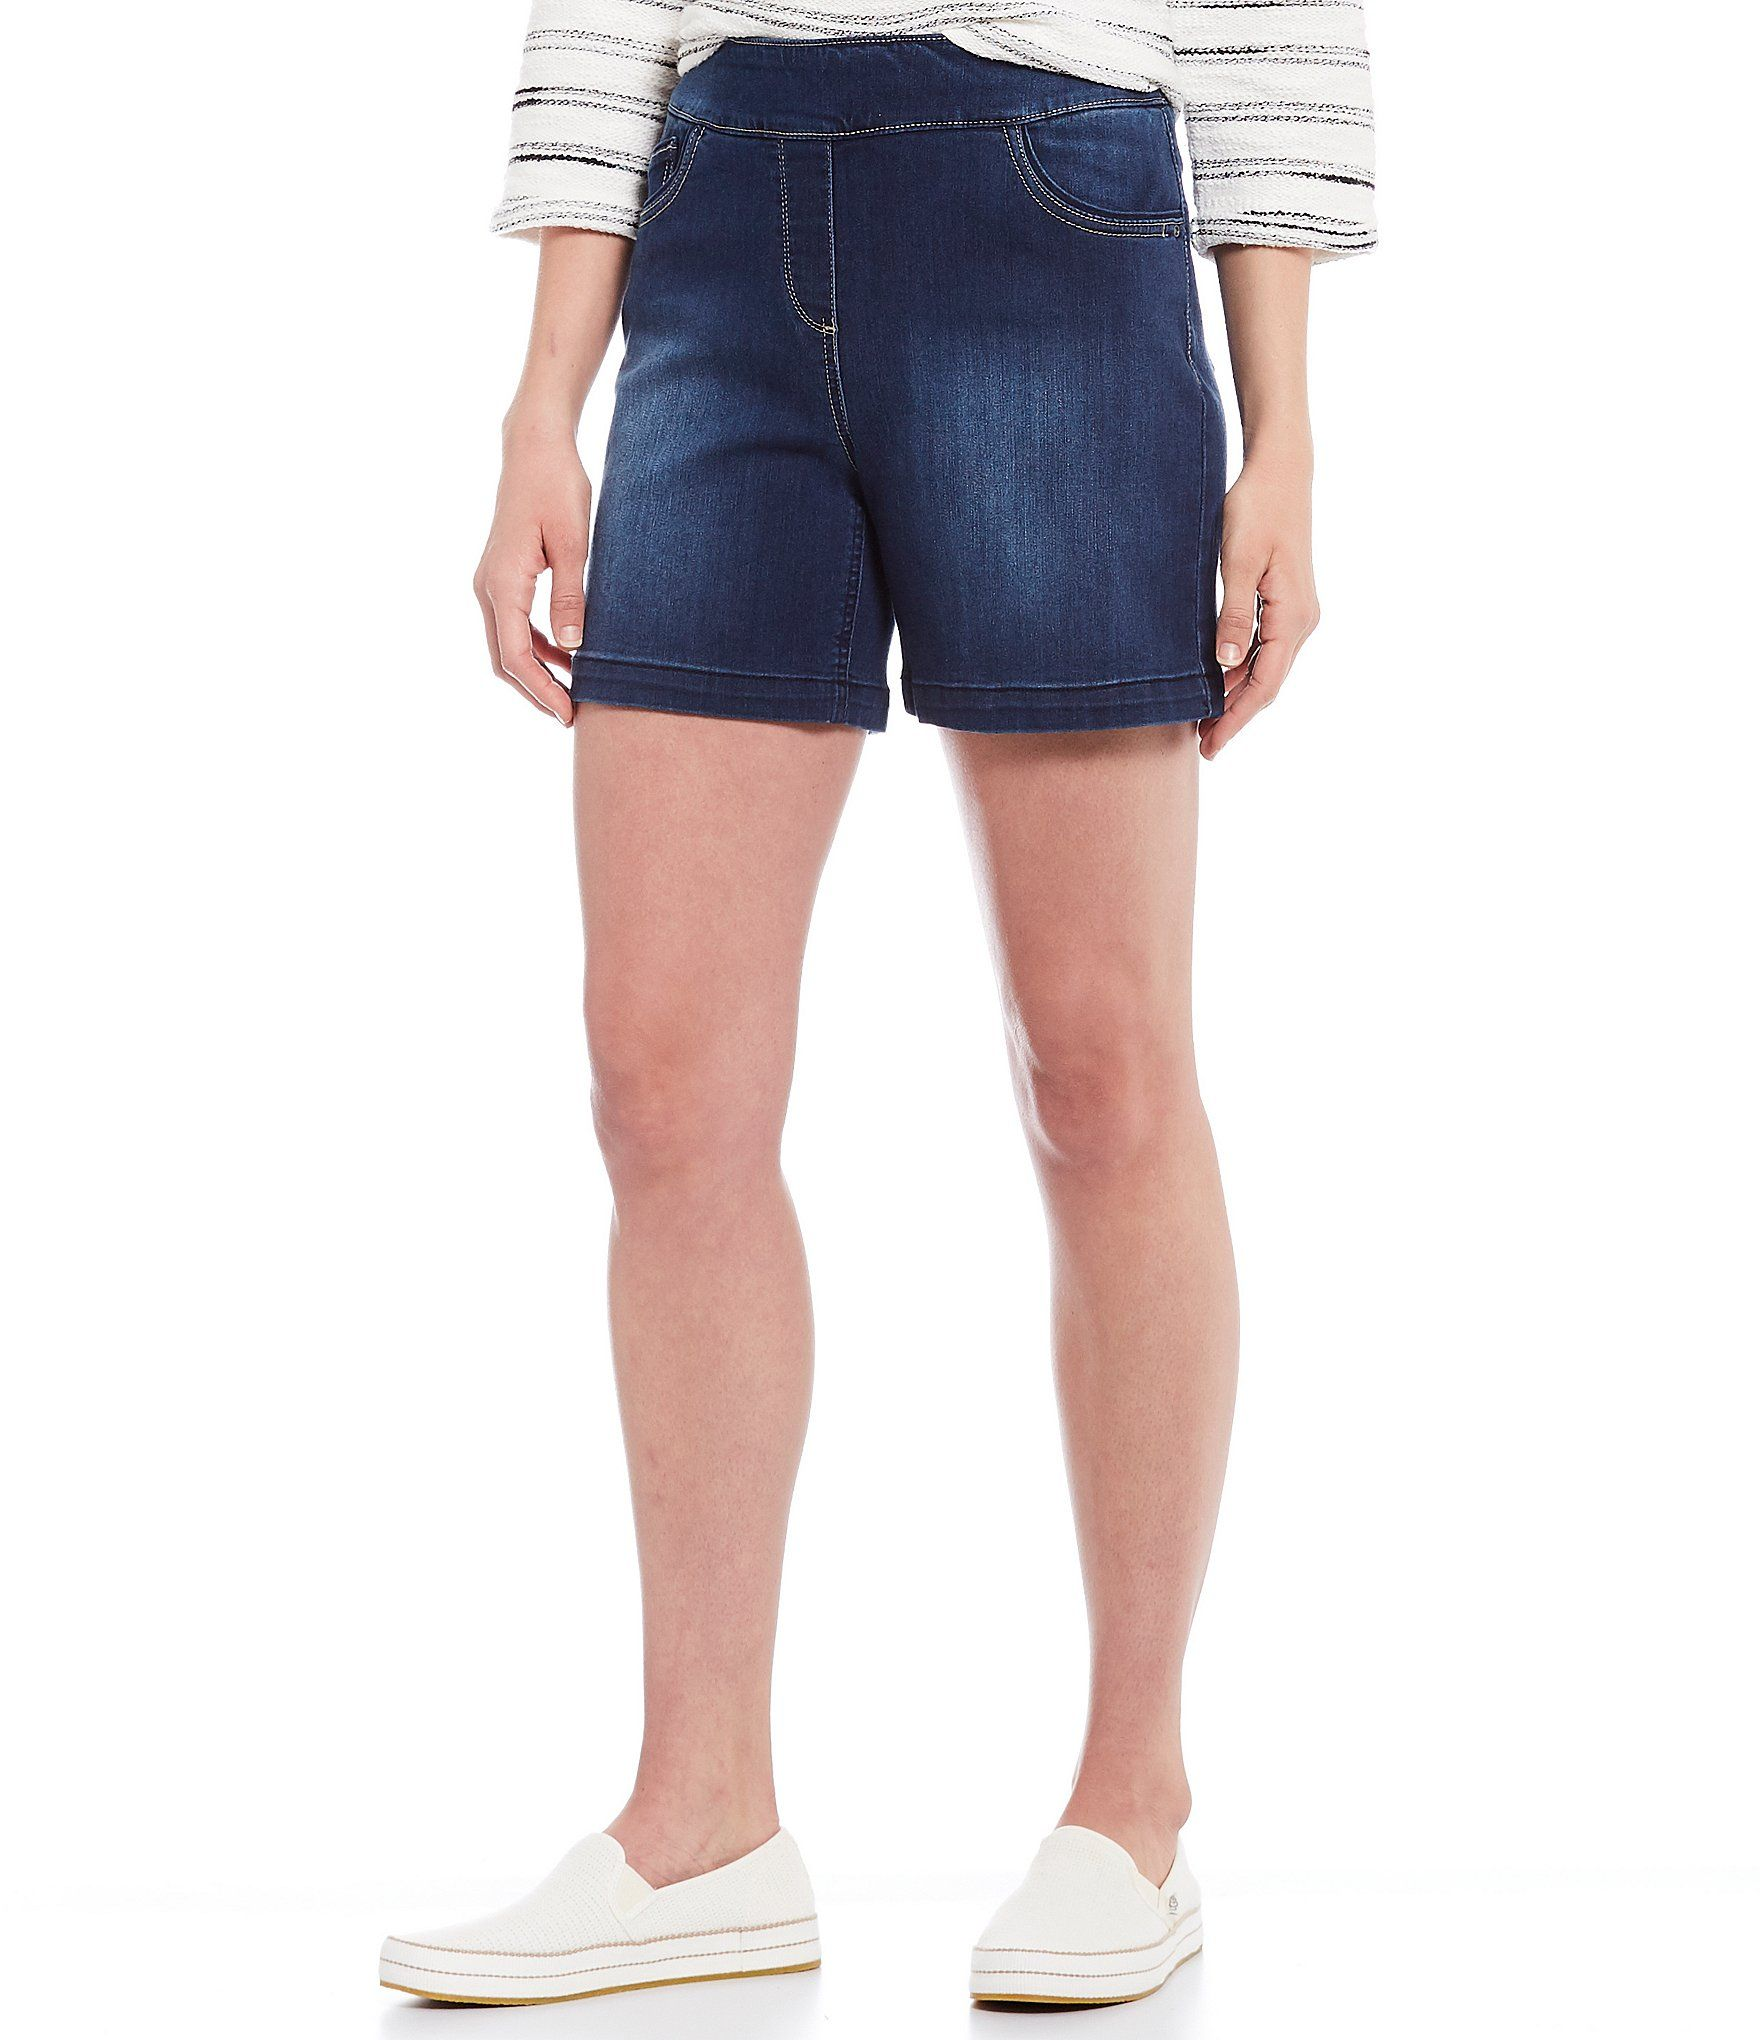 Westbound Petite Size the PARK AVE fit Shorts Dillard's